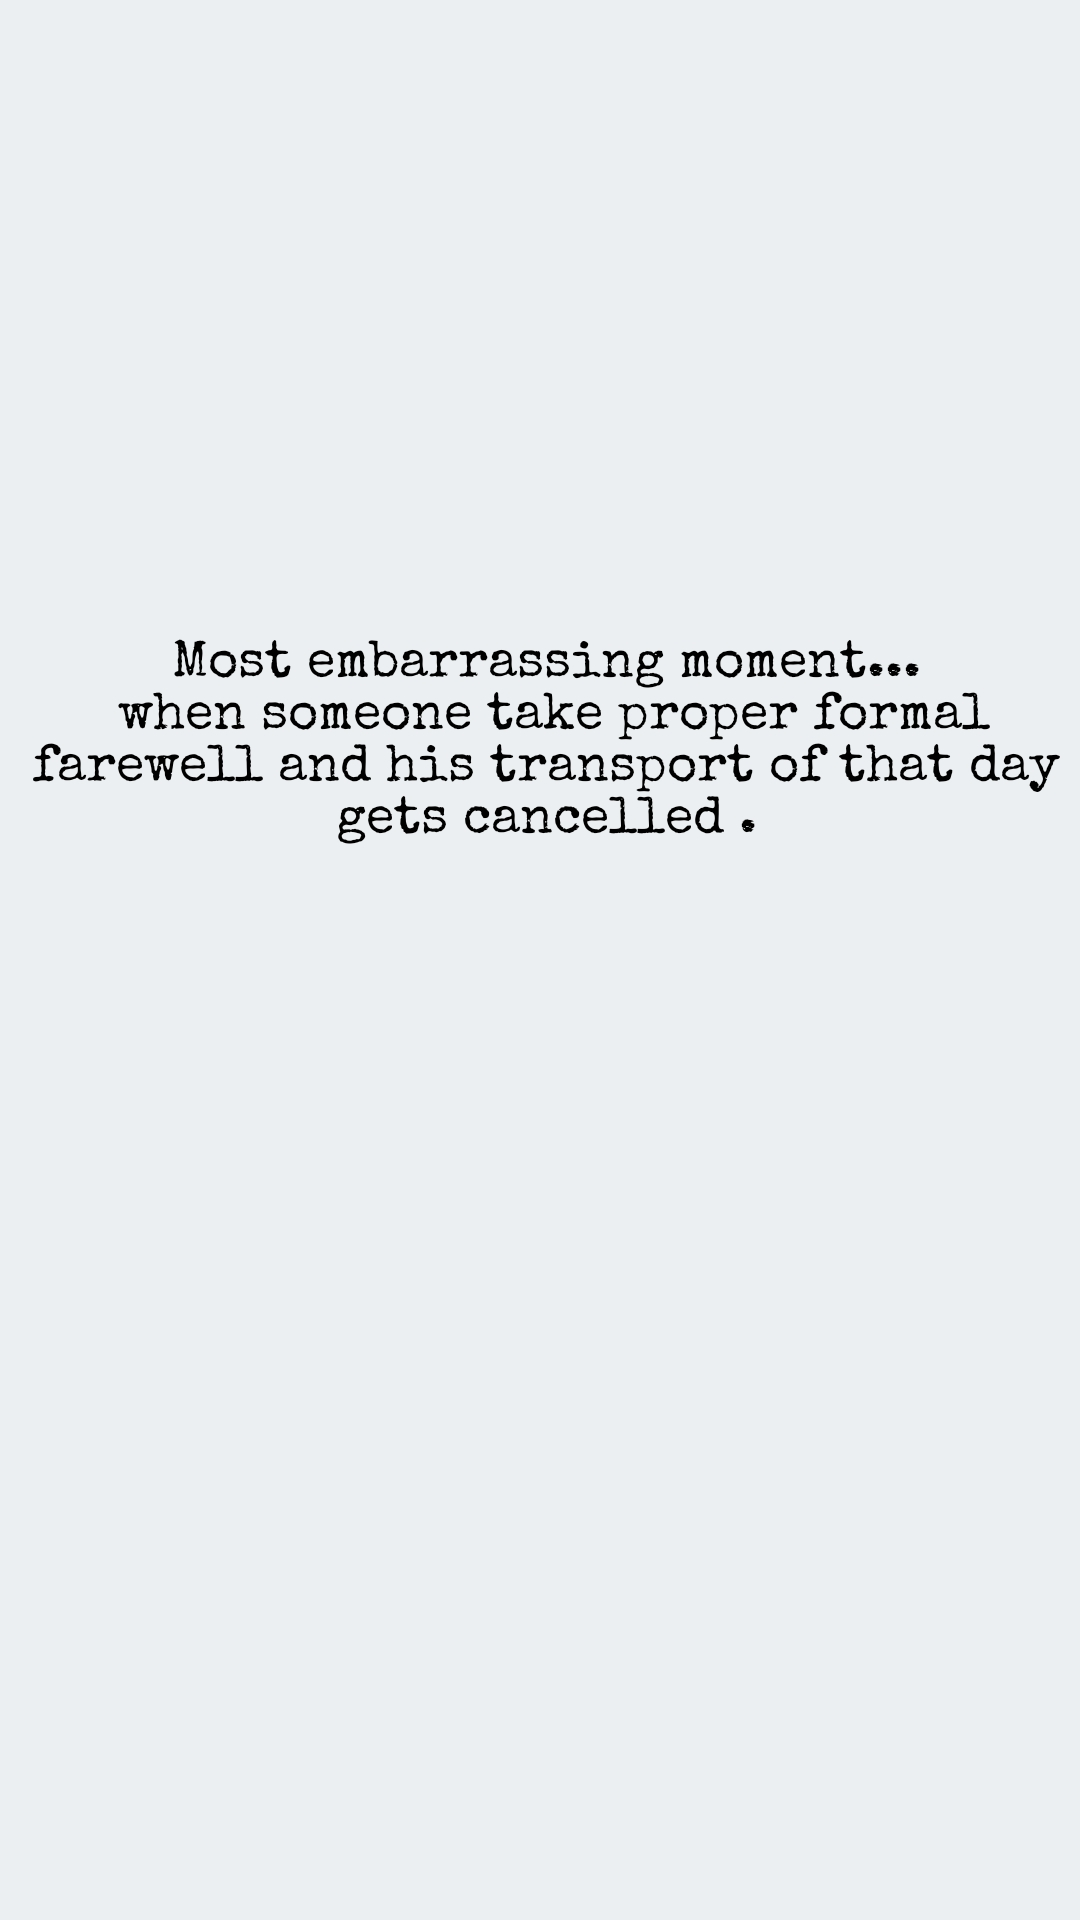 Most embarrassing moment...  when someone take proper formal farewell and his transport of that day gets cancelled .